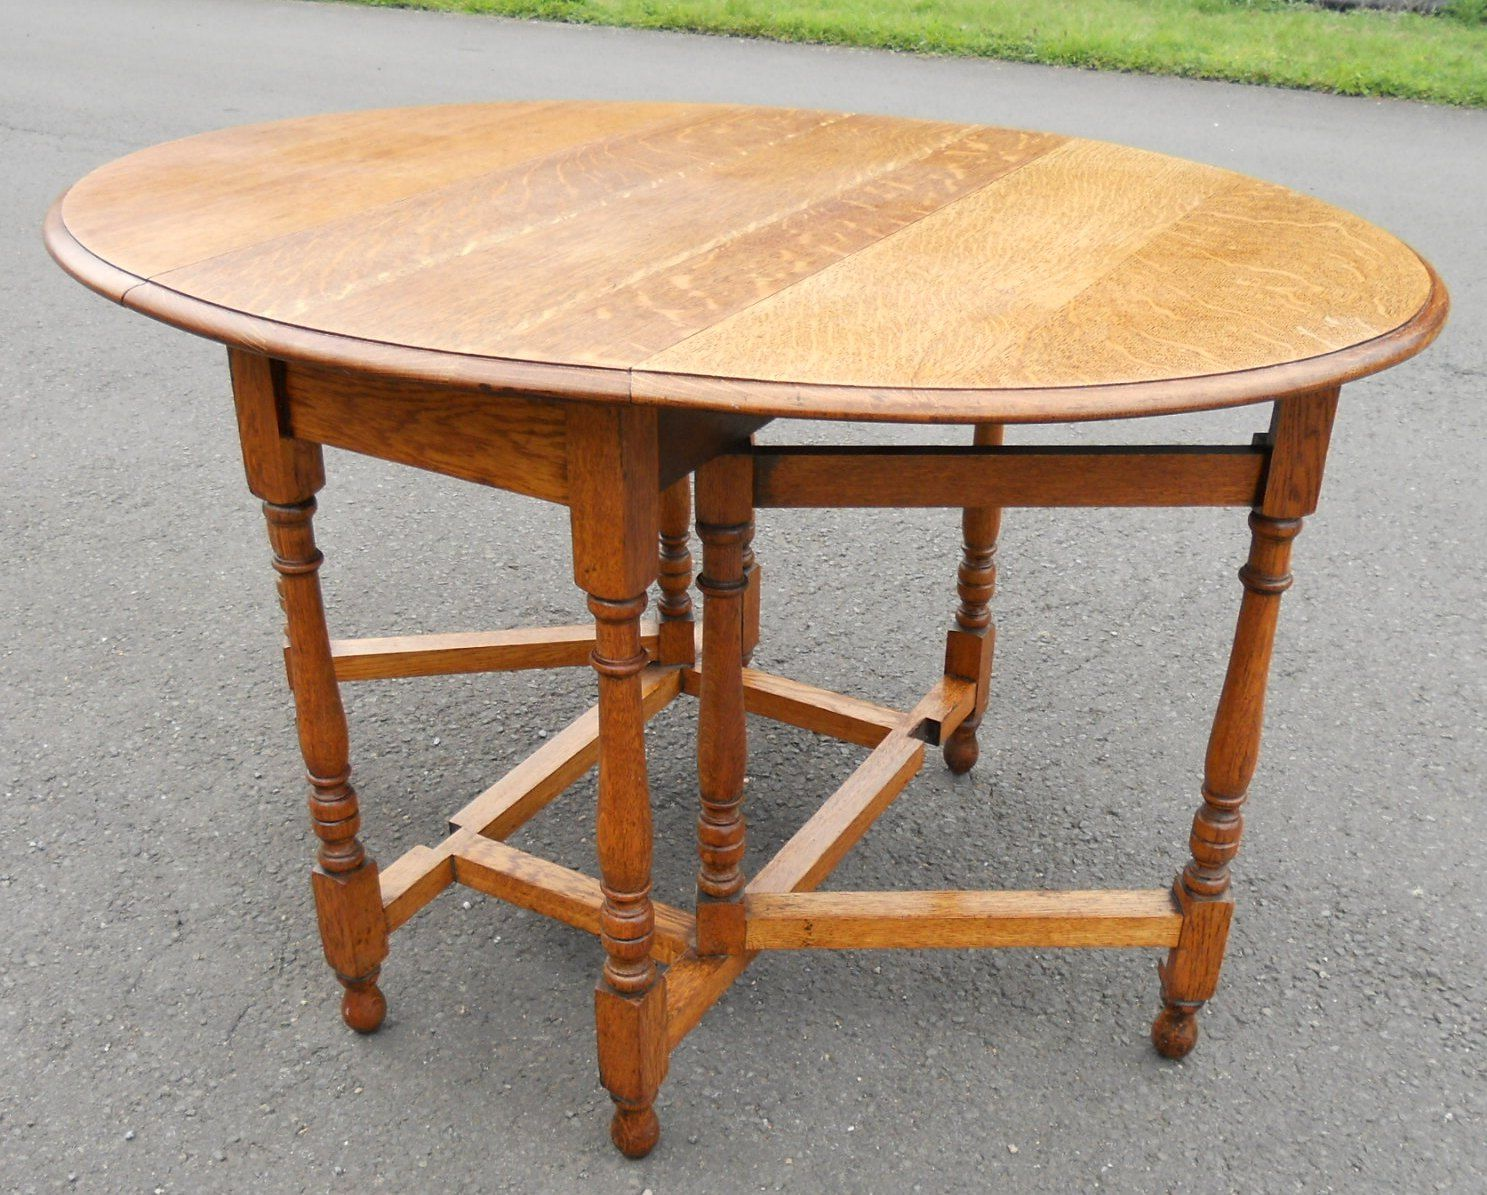 Gateleg Table Gateleg Table Kijiji Free Classifieds In Ontario Find A Job With Cheap Old Gate